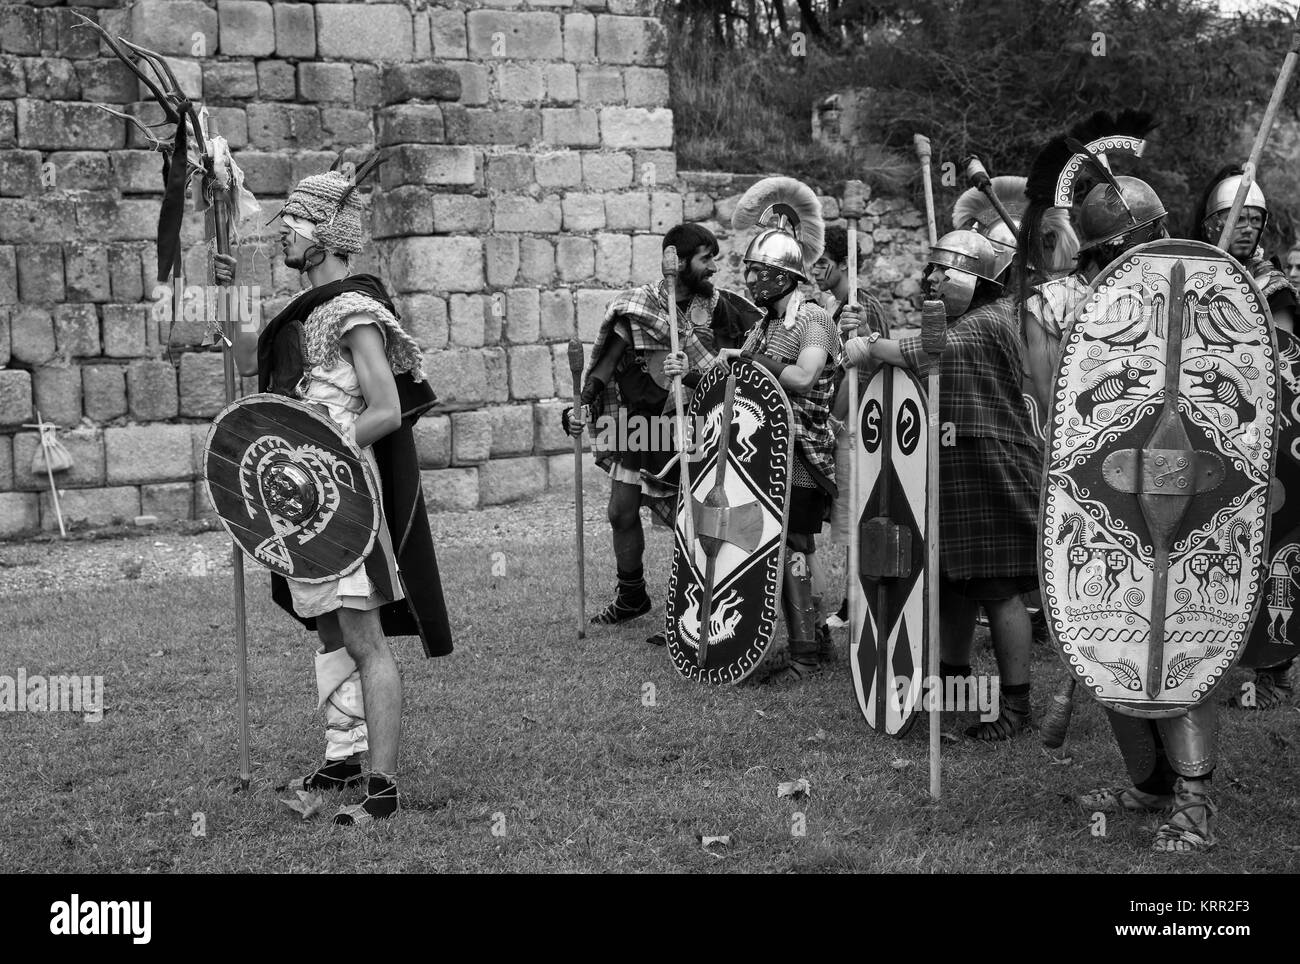 Mérida, Spain - September 27, 2014: Several people dressed in the costume of ancient Celtic warrior in the - Stock Image